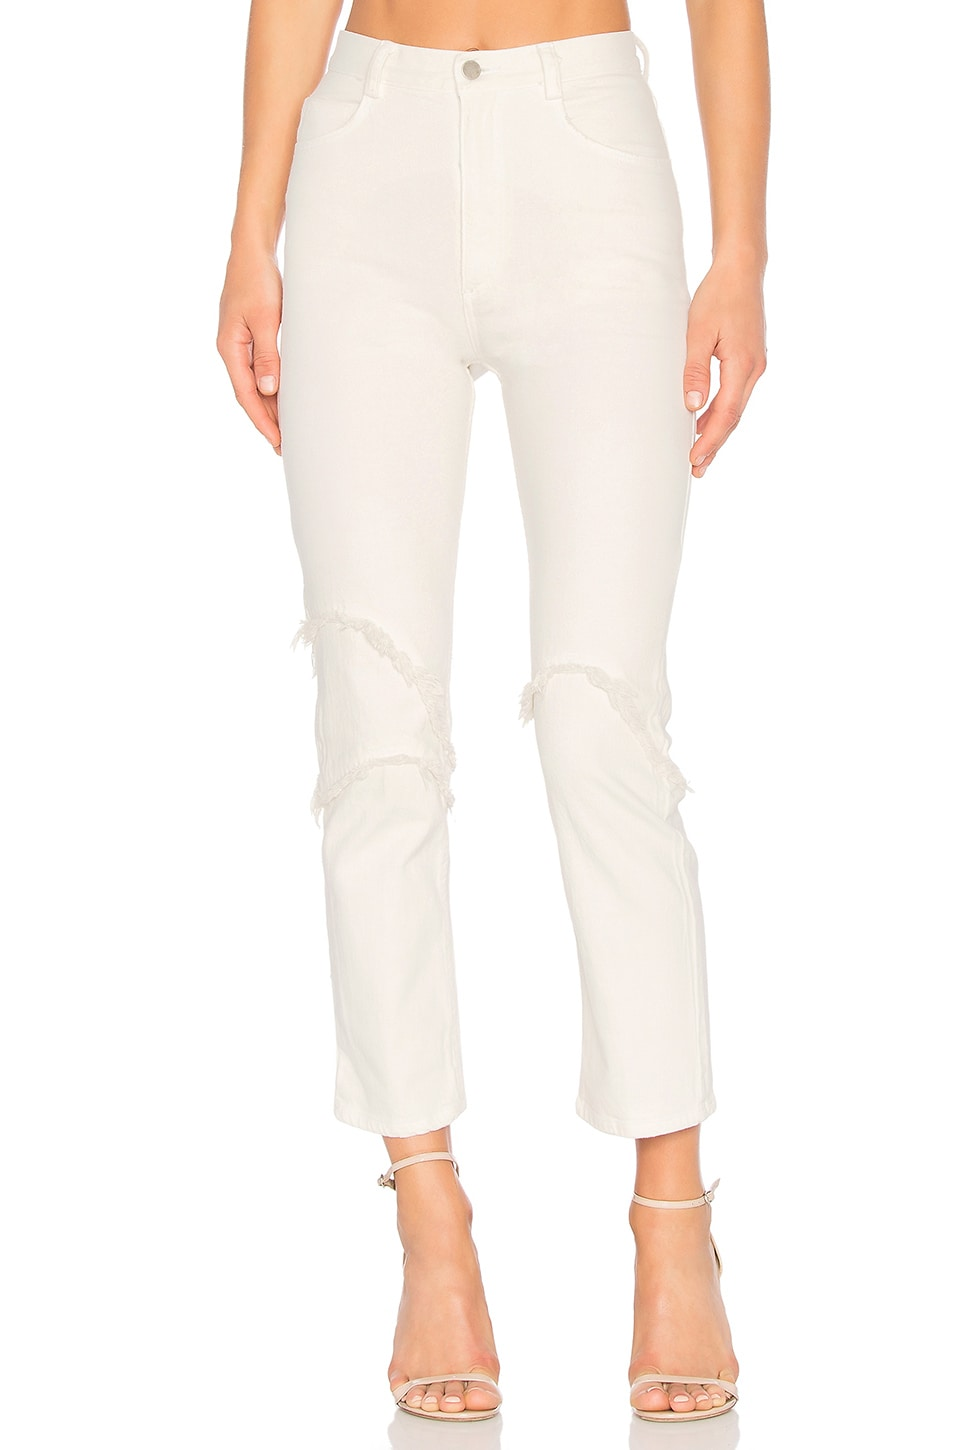 Ticklers Pant by Rachel Comey